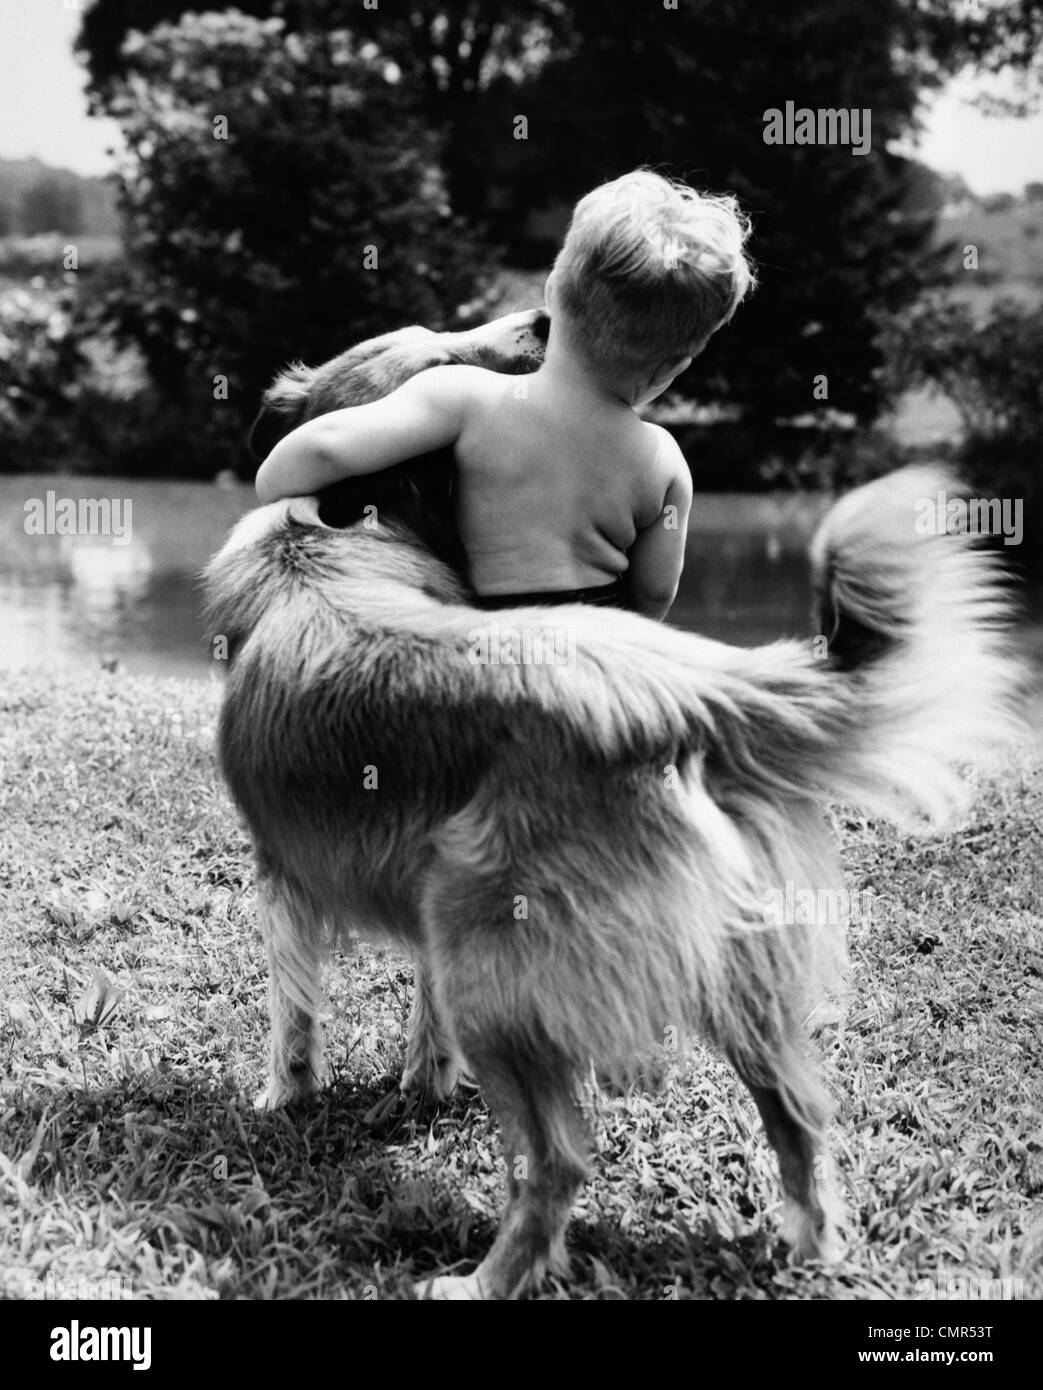 1940s 1950s 1960s BACK VIEW OF BOY AND DOG HUGGING - Stock Image